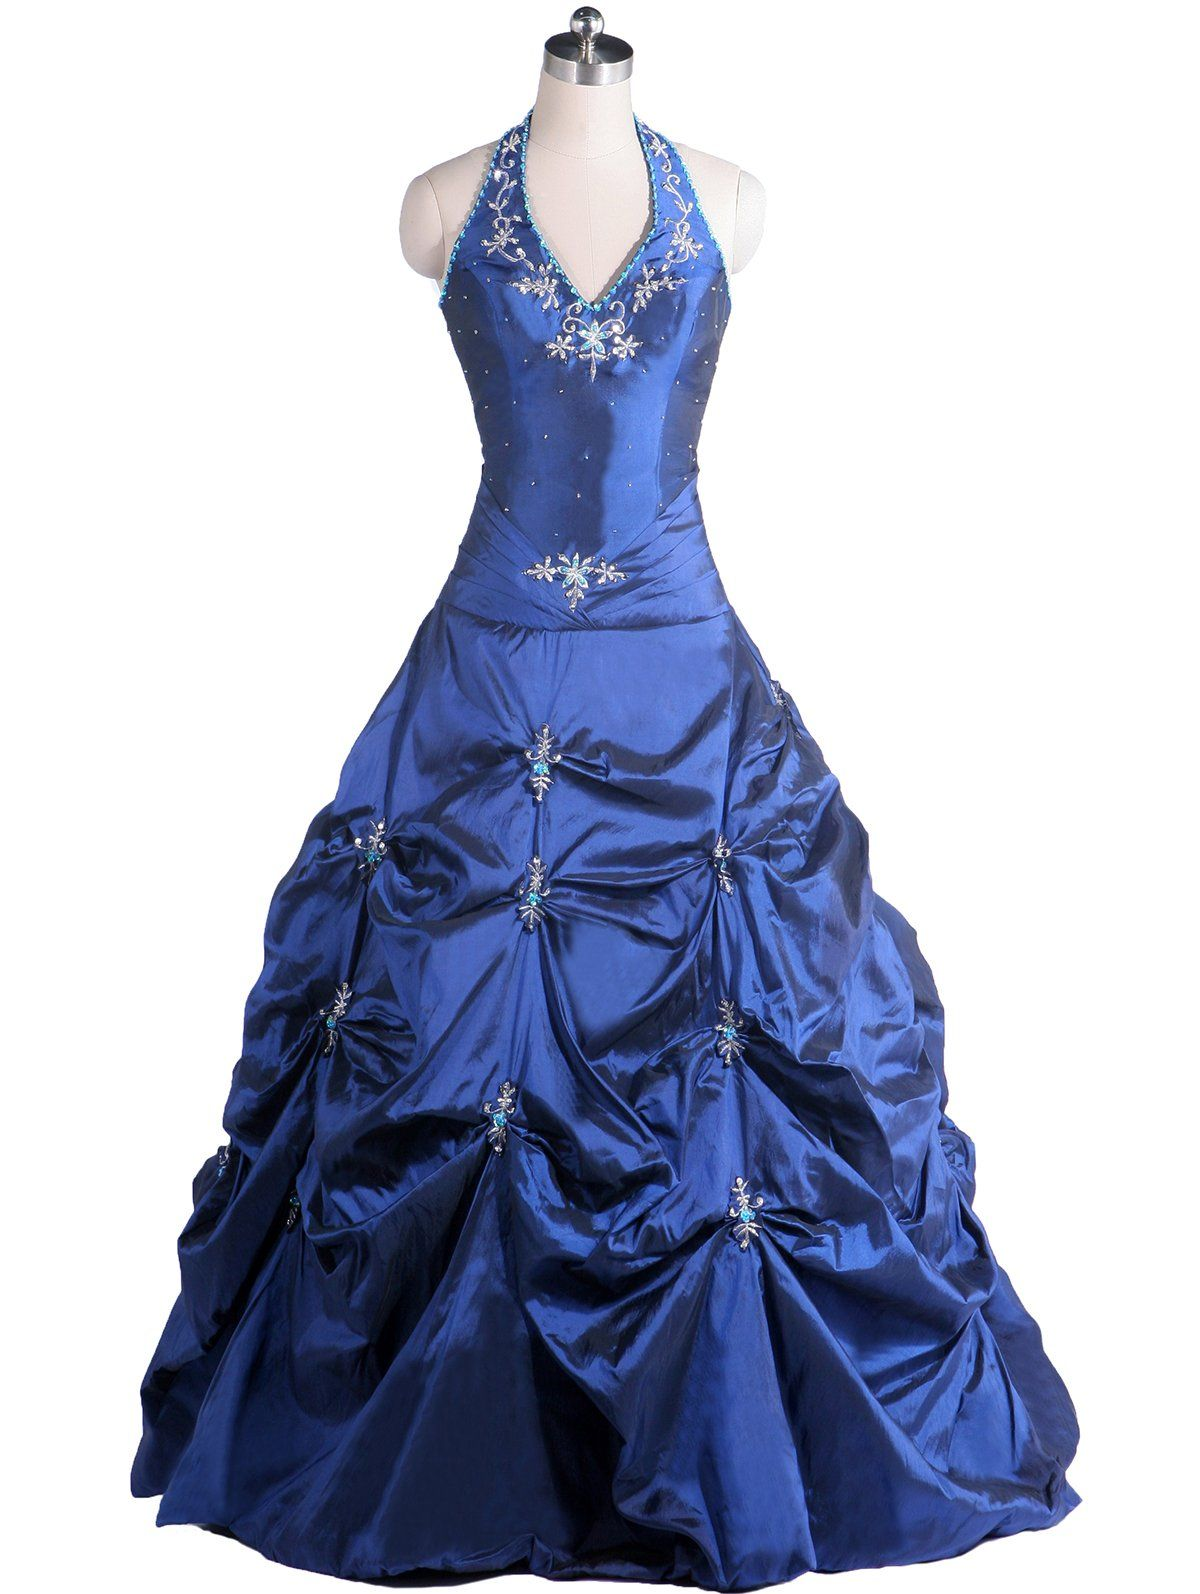 Mrzhu long ruched halter quinceanera dress ball gown prom dress